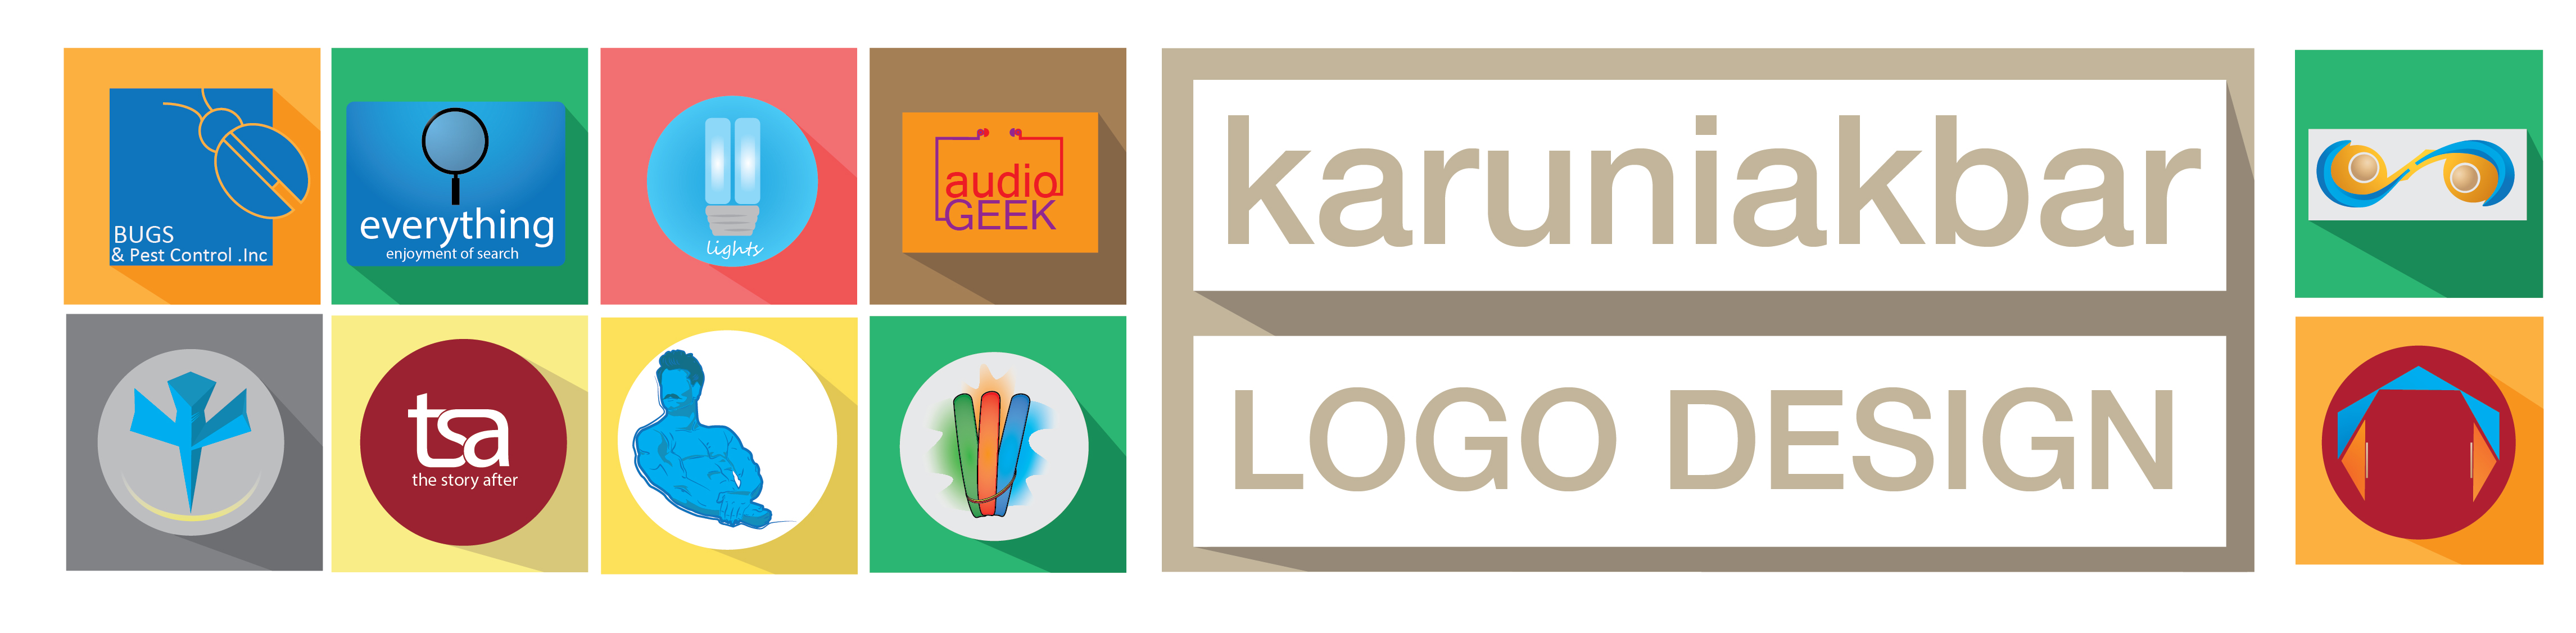 do REMARKABLE logo design